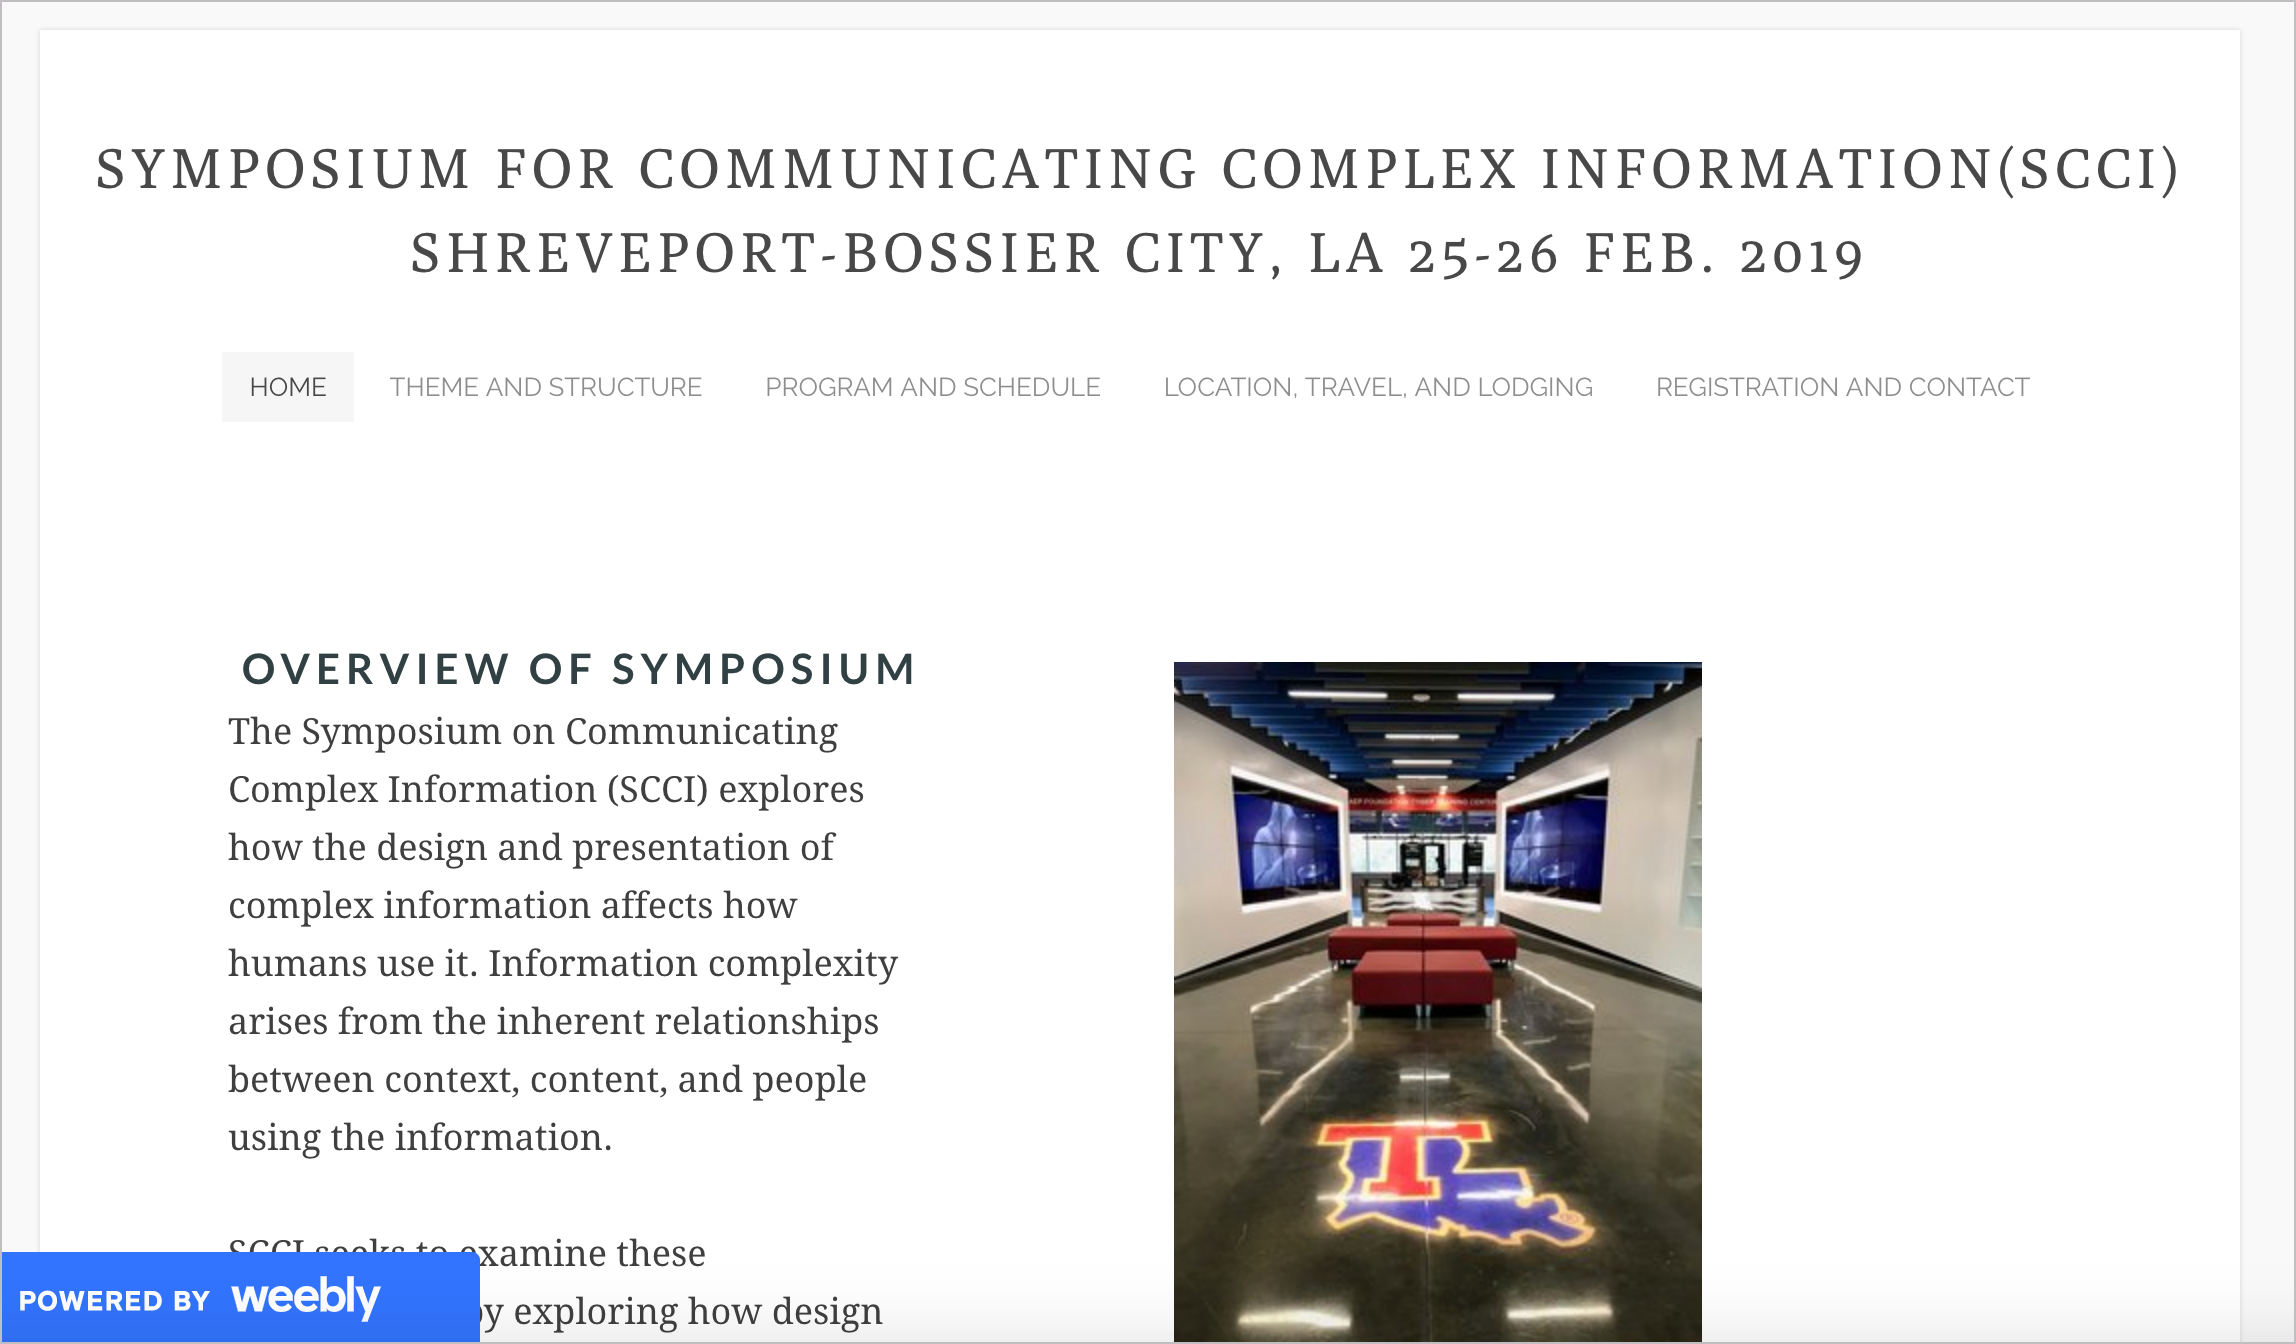 Symposium for Communicating Complex Information (SCCI)